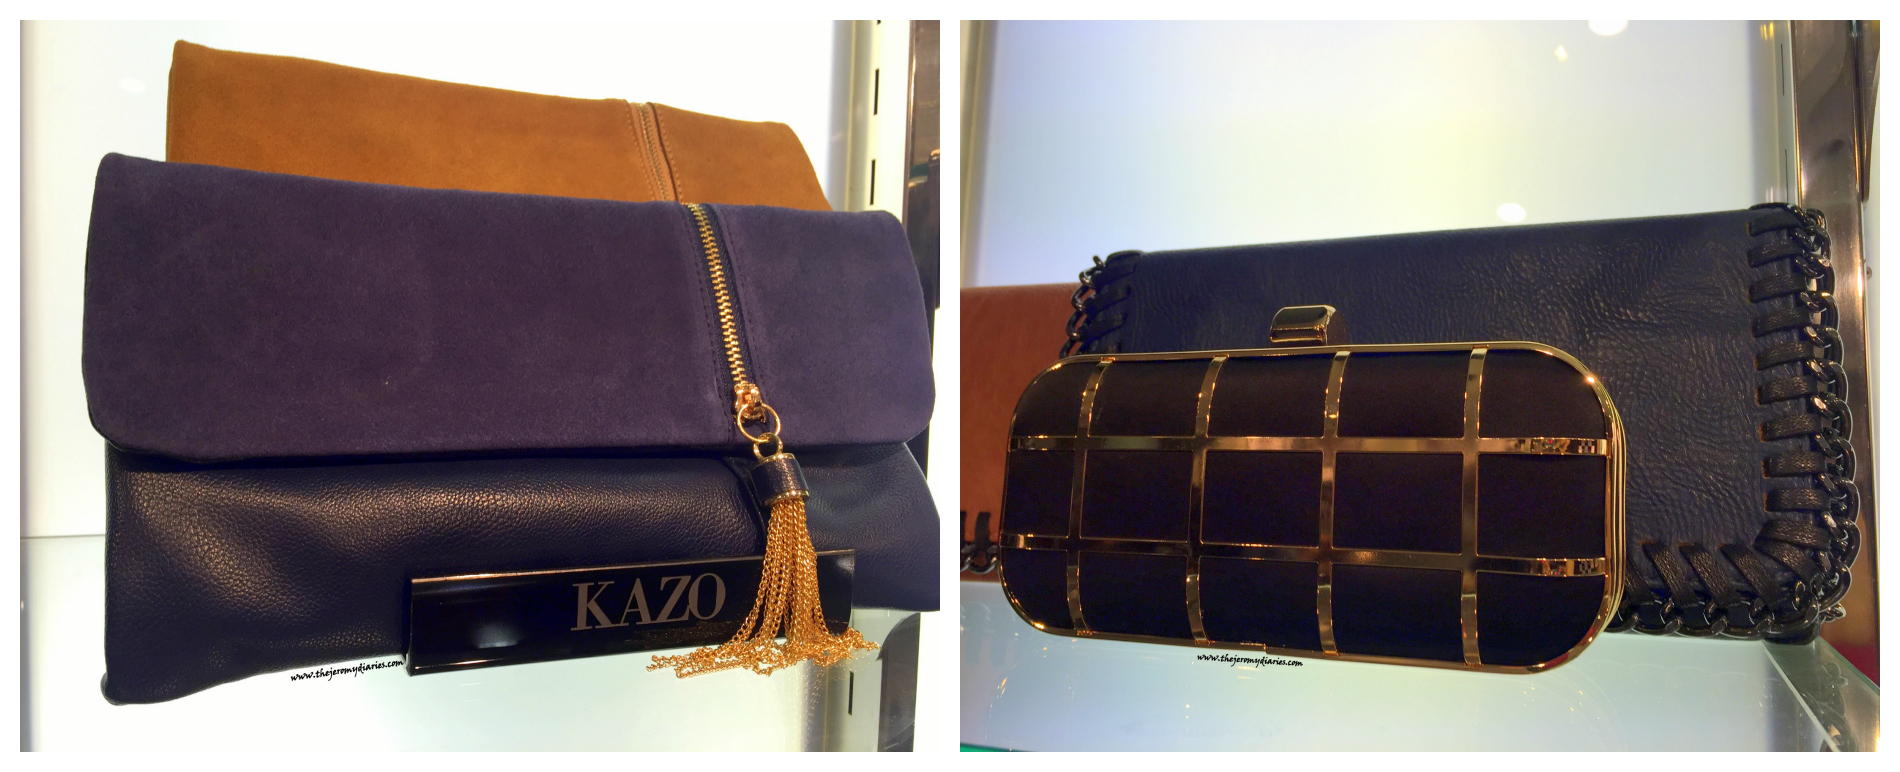 kazo autumn winter 2015 collection clutches and bags the jeromy diaries